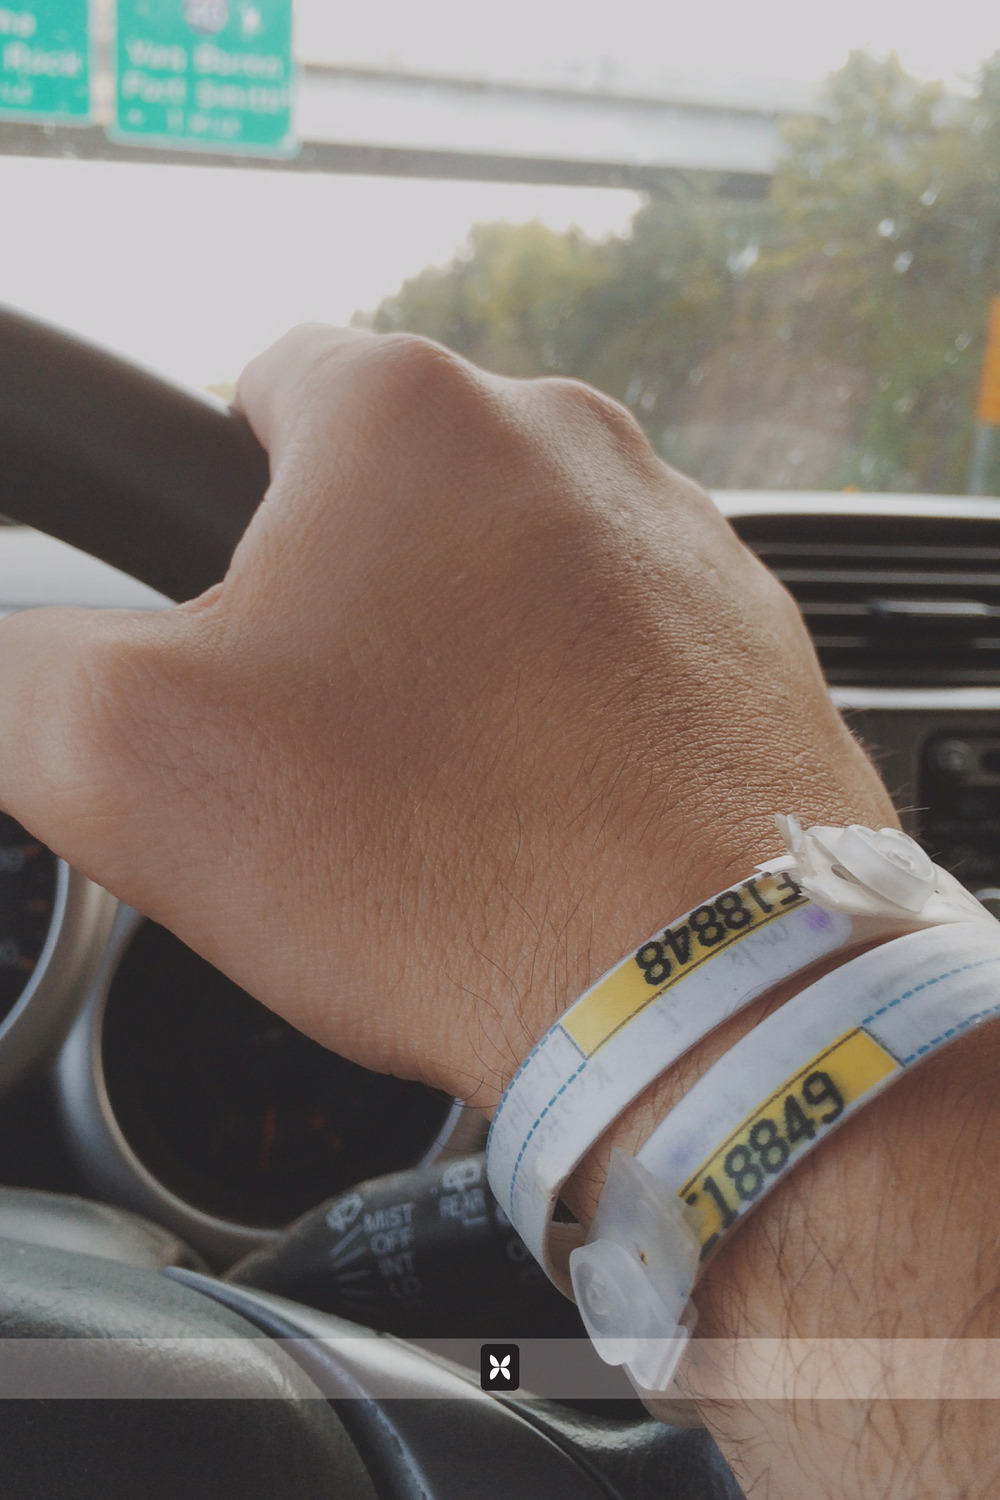 These two wristbands are constant reminders of what I have to look forward to upon my return.